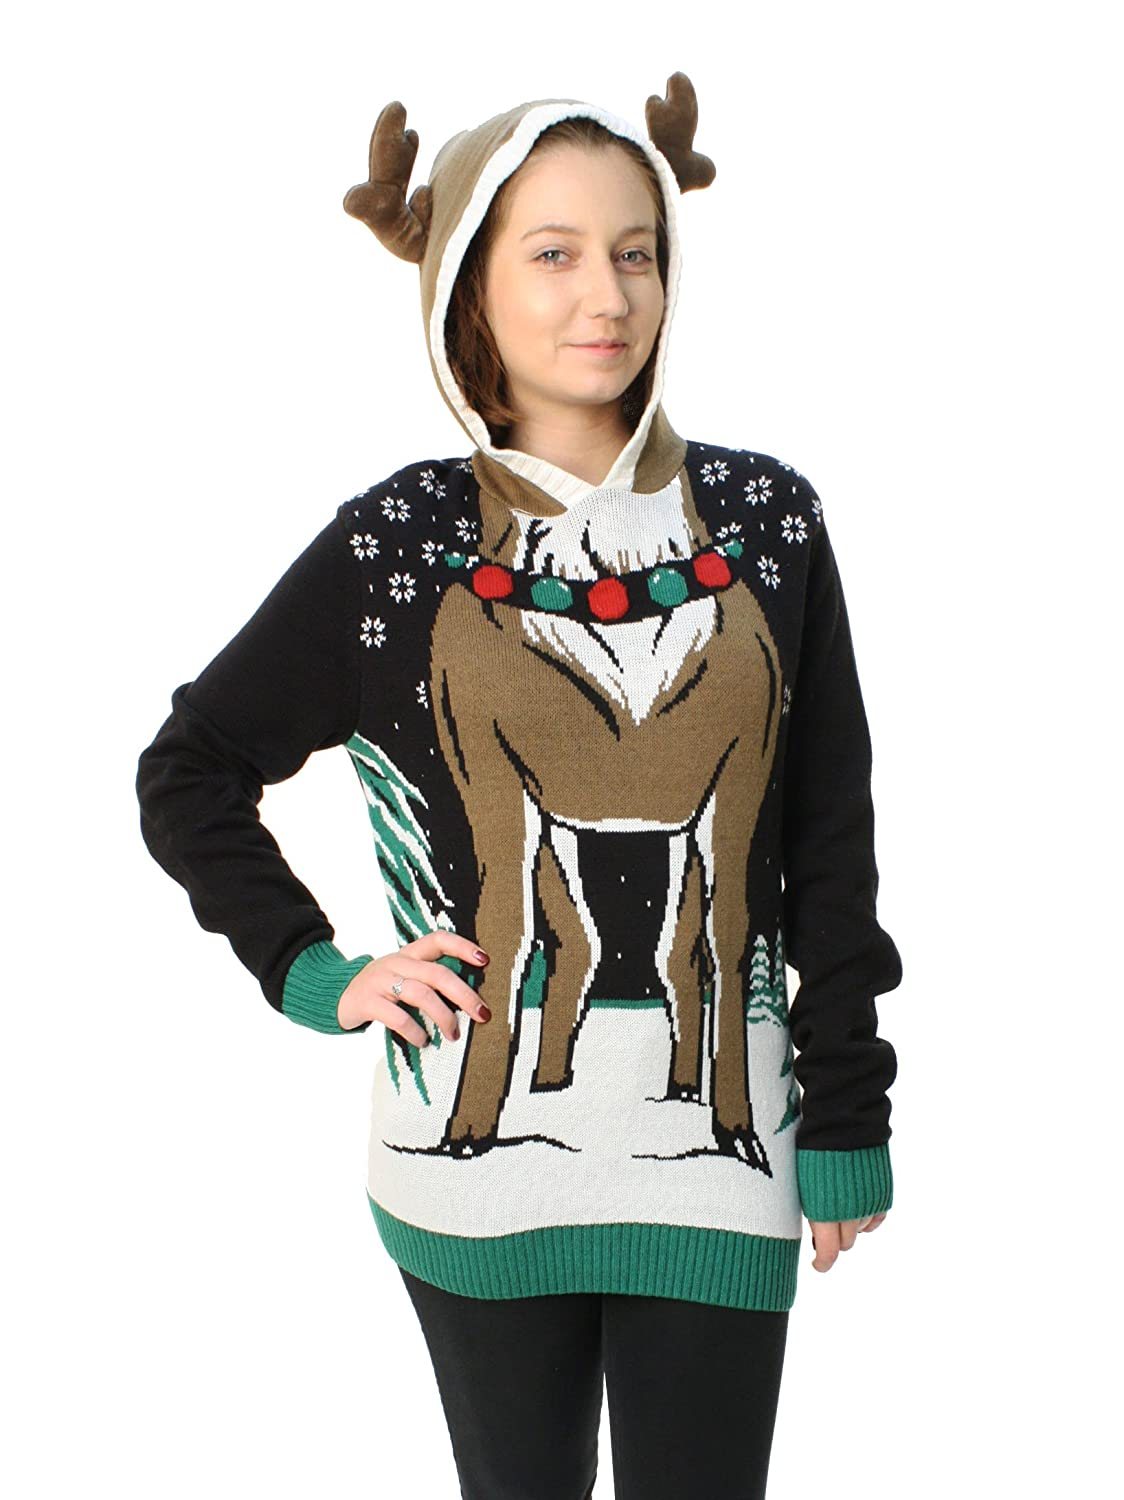 Ugly Christmas Sweater Plus Size Women's Reindeer Hooded Light up Pullover Sweatshirt CW-SYP6-4411HMG2-BLACK-Parent